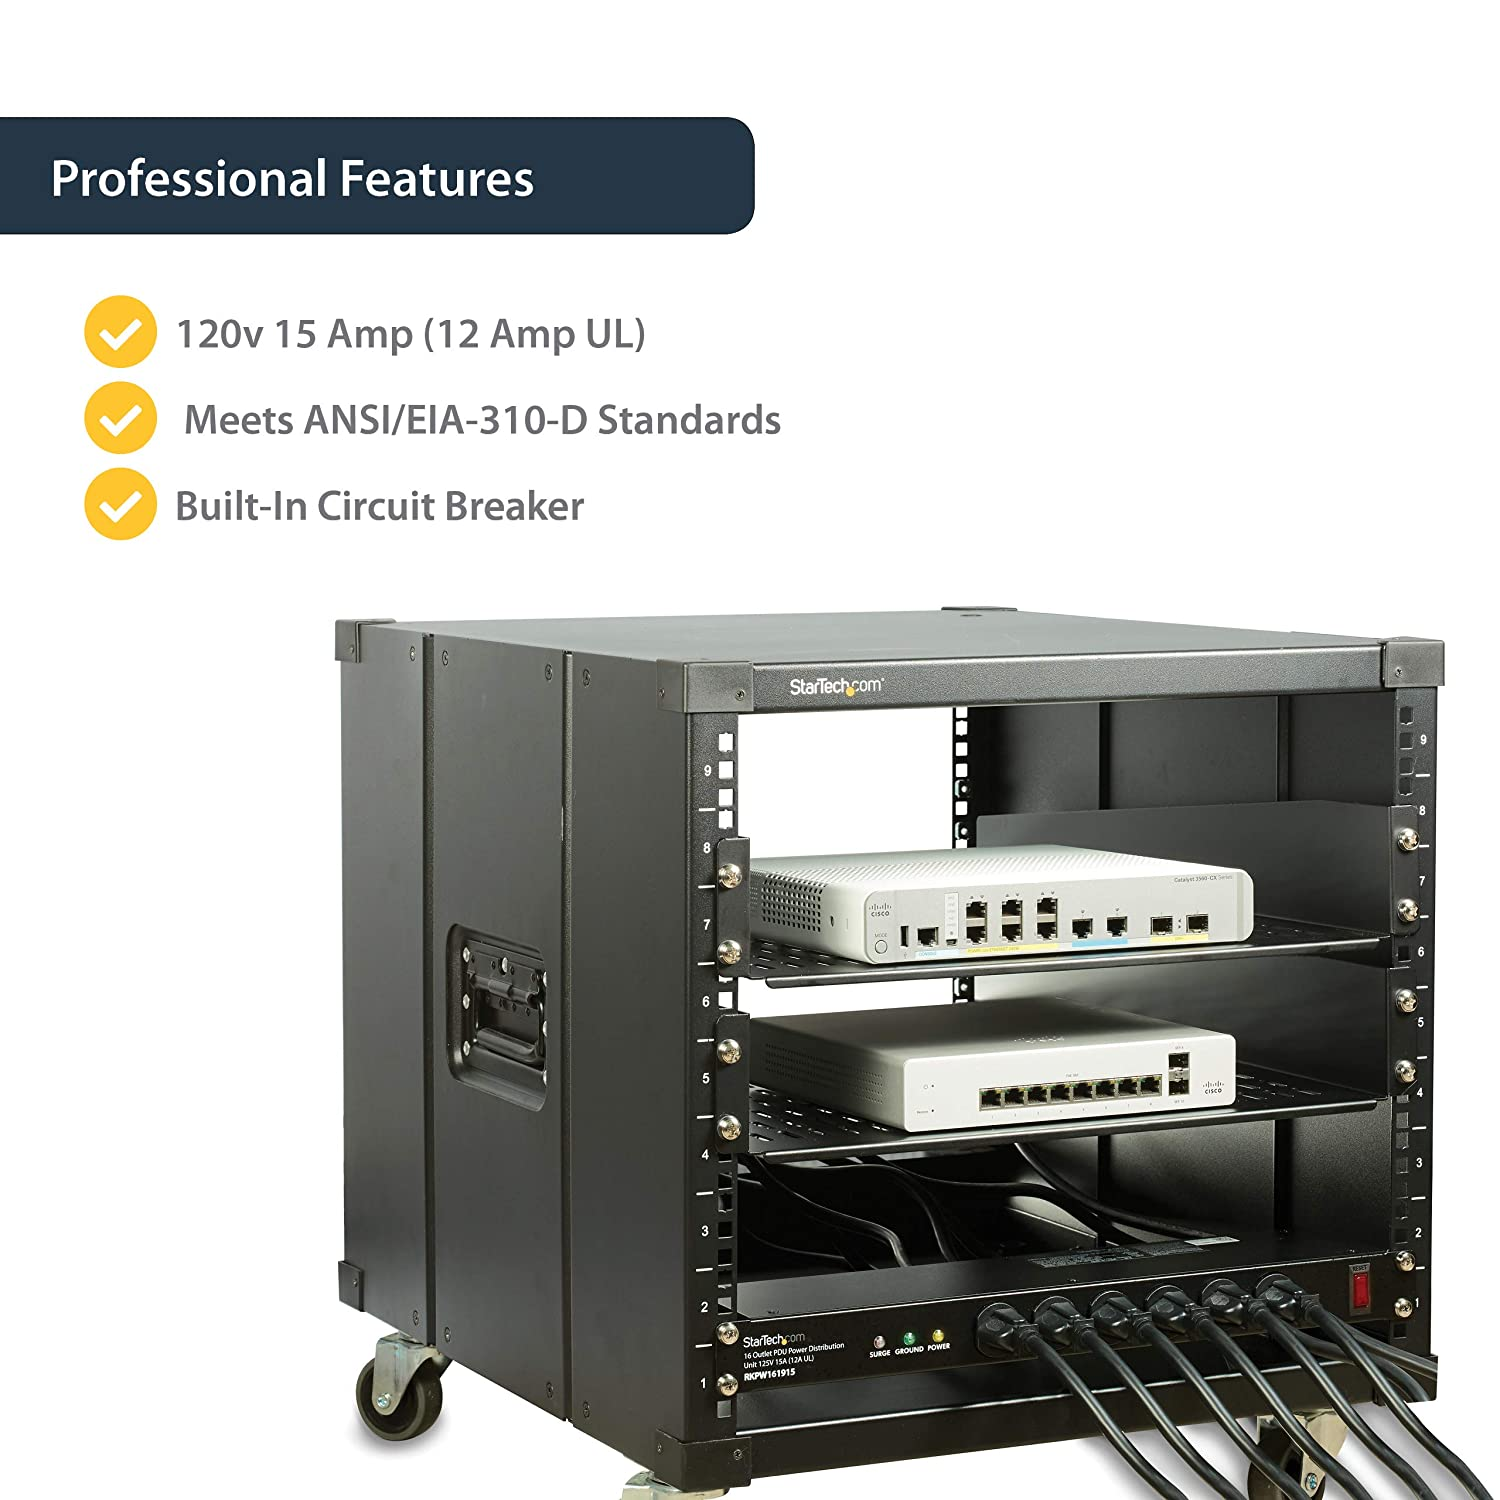 RKPW081915 19in Rackmount Power Distribution Unit 8 Outlets with Surge Protection StarTech.com 1U Horizontal Rack Mount PDU